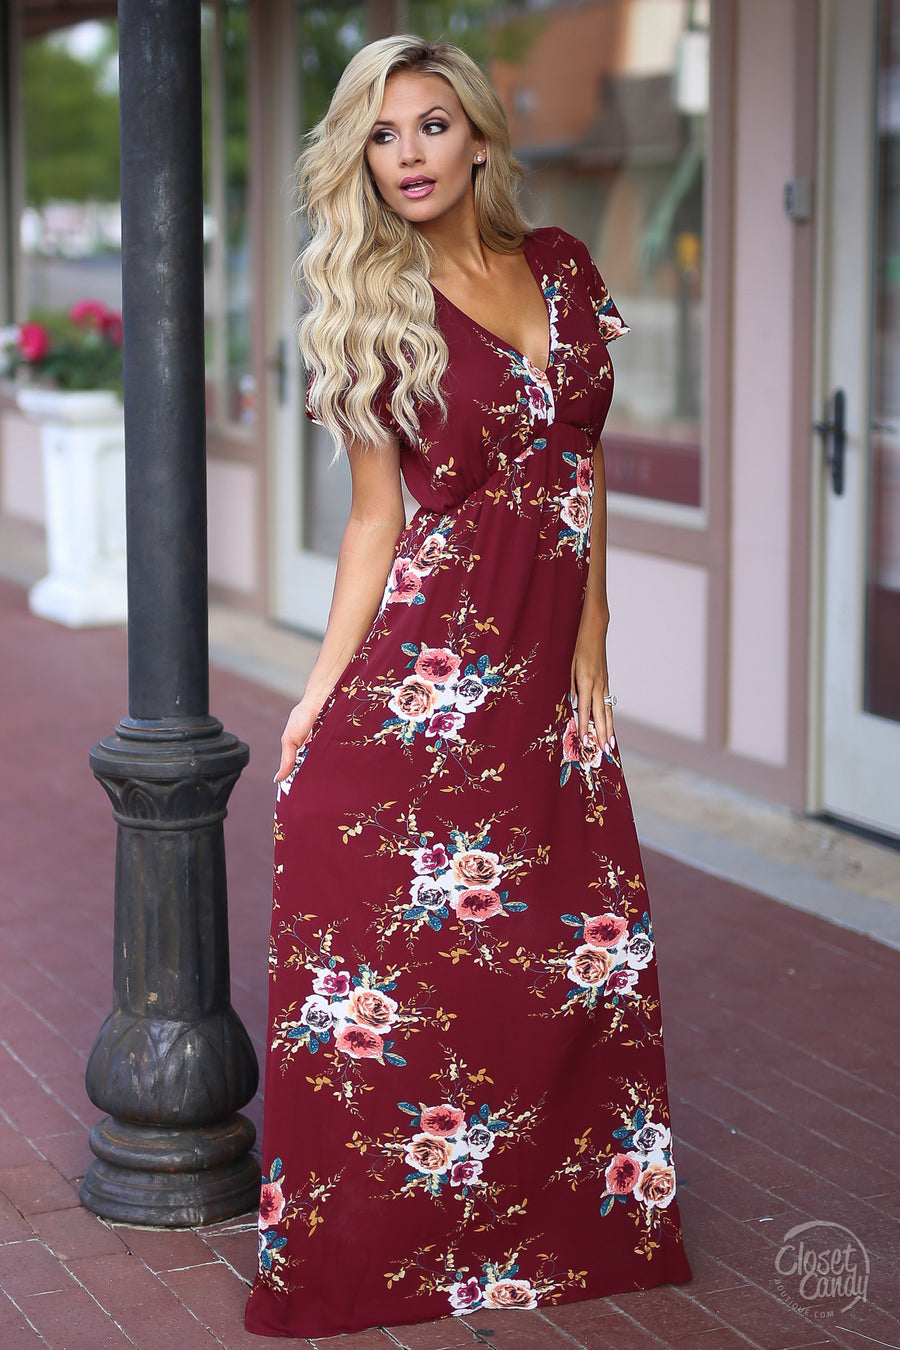 Closet Candy Boutique - wine floral maxi dress, long floral dress, spring and summer style